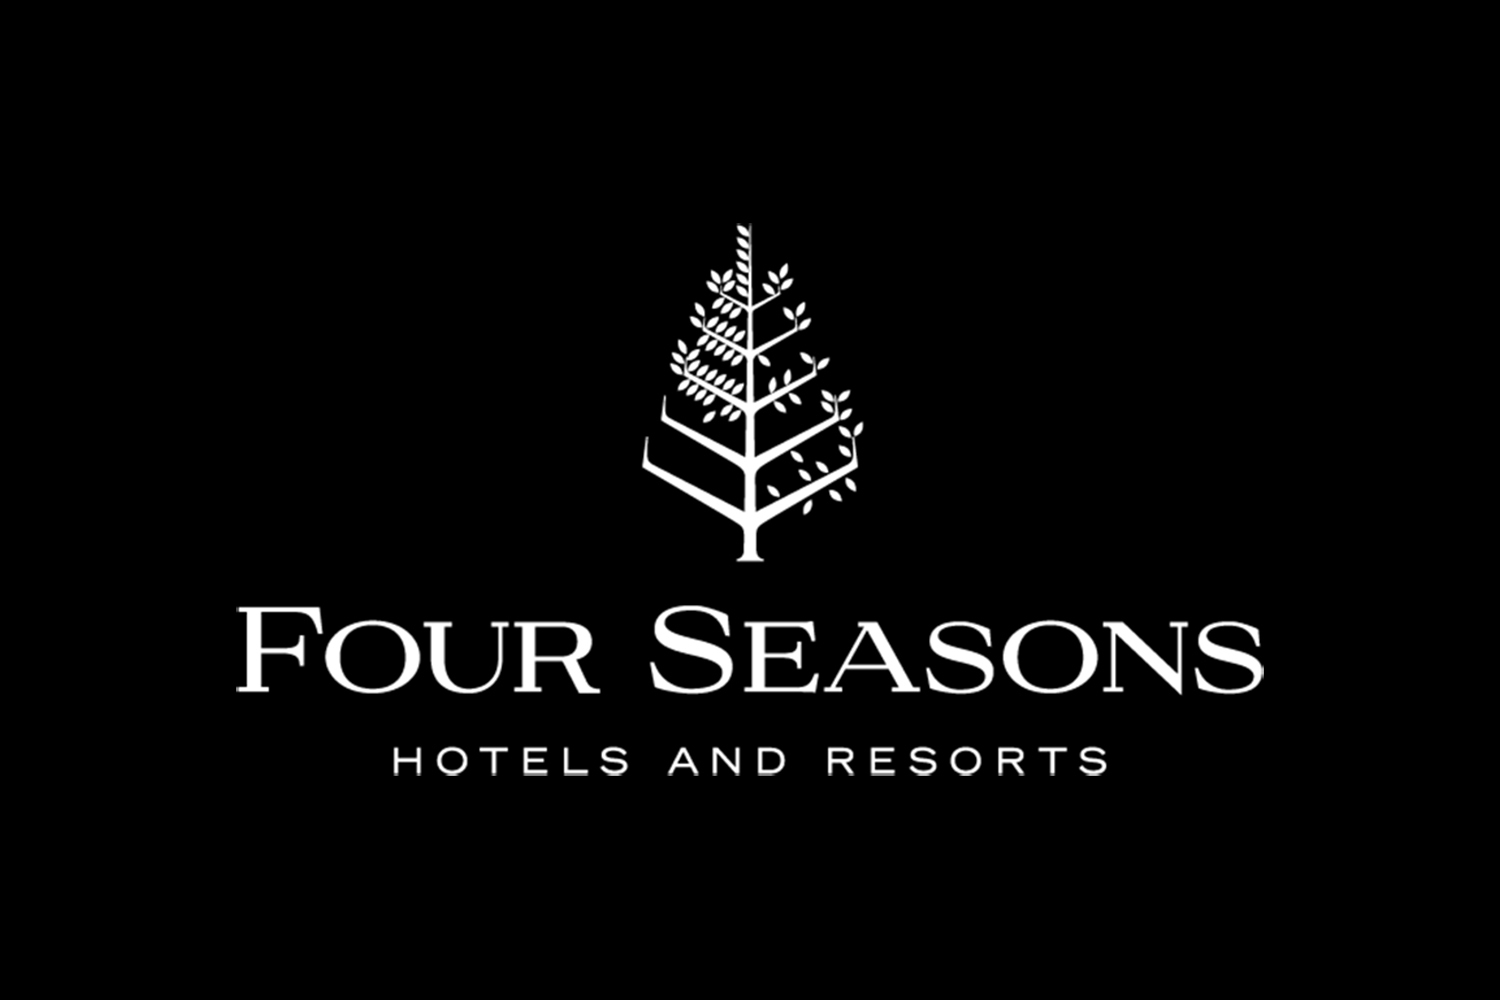 FOUR SEASONS / SOCIAL MEDIA STRATEGY    Combined a critical assessment of Four Seasons Hotels and Resorts social media efforts with innovative industry practices, to develop a comprehensive social media strategy including ideation around eight cross-platform programs that drove brand distinction and growth of the next generation of brand enthusiasts.